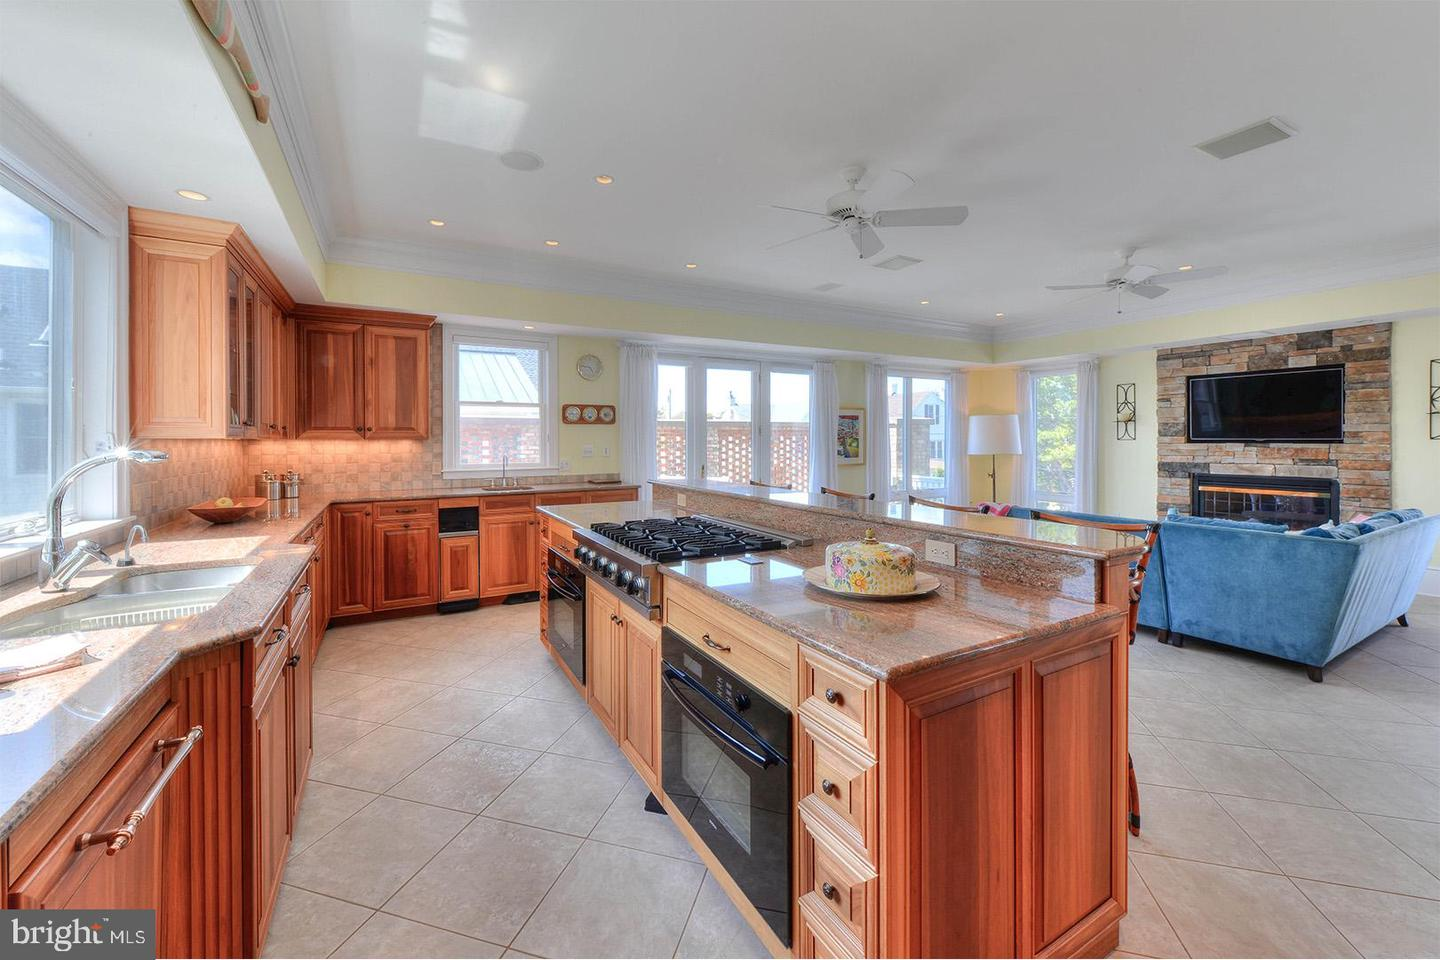 DESU159700-304100430614-2020-05-01-17-16-50 4 Prospect St | Rehoboth Beach, DE Real Estate For Sale | MLS# Desu159700  - Lee Ann Group